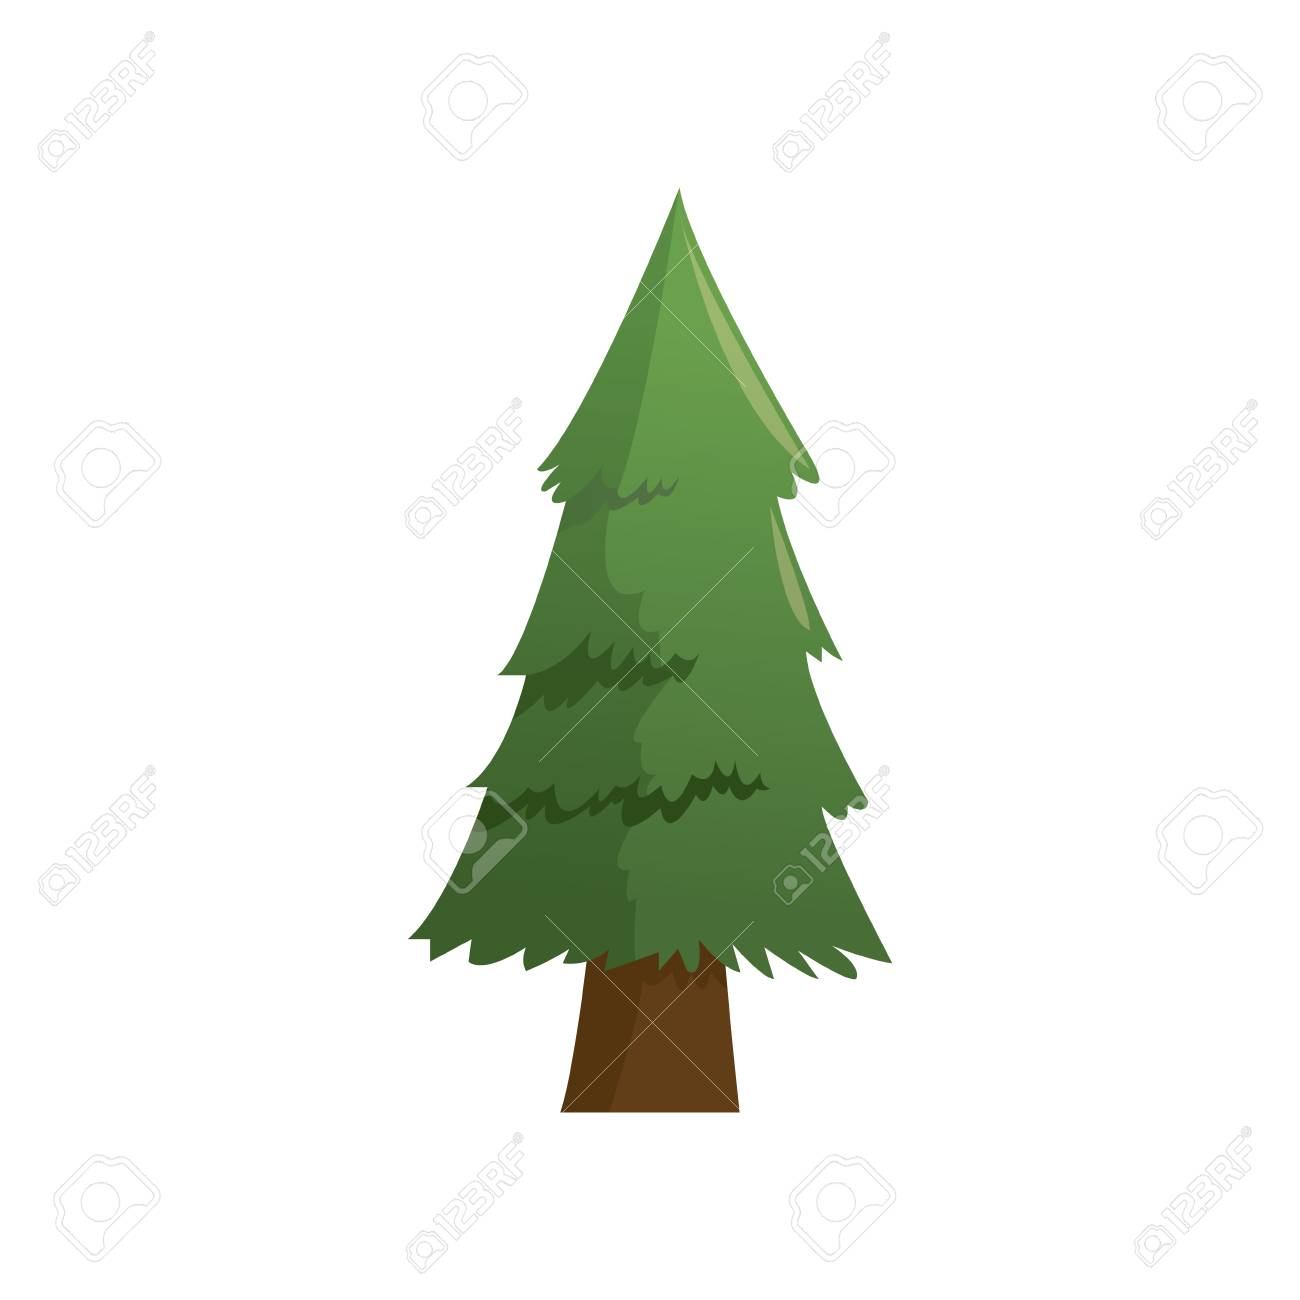 Cartoon Pine Tree Natural Plant Conifer Image Vector Illustration Stock